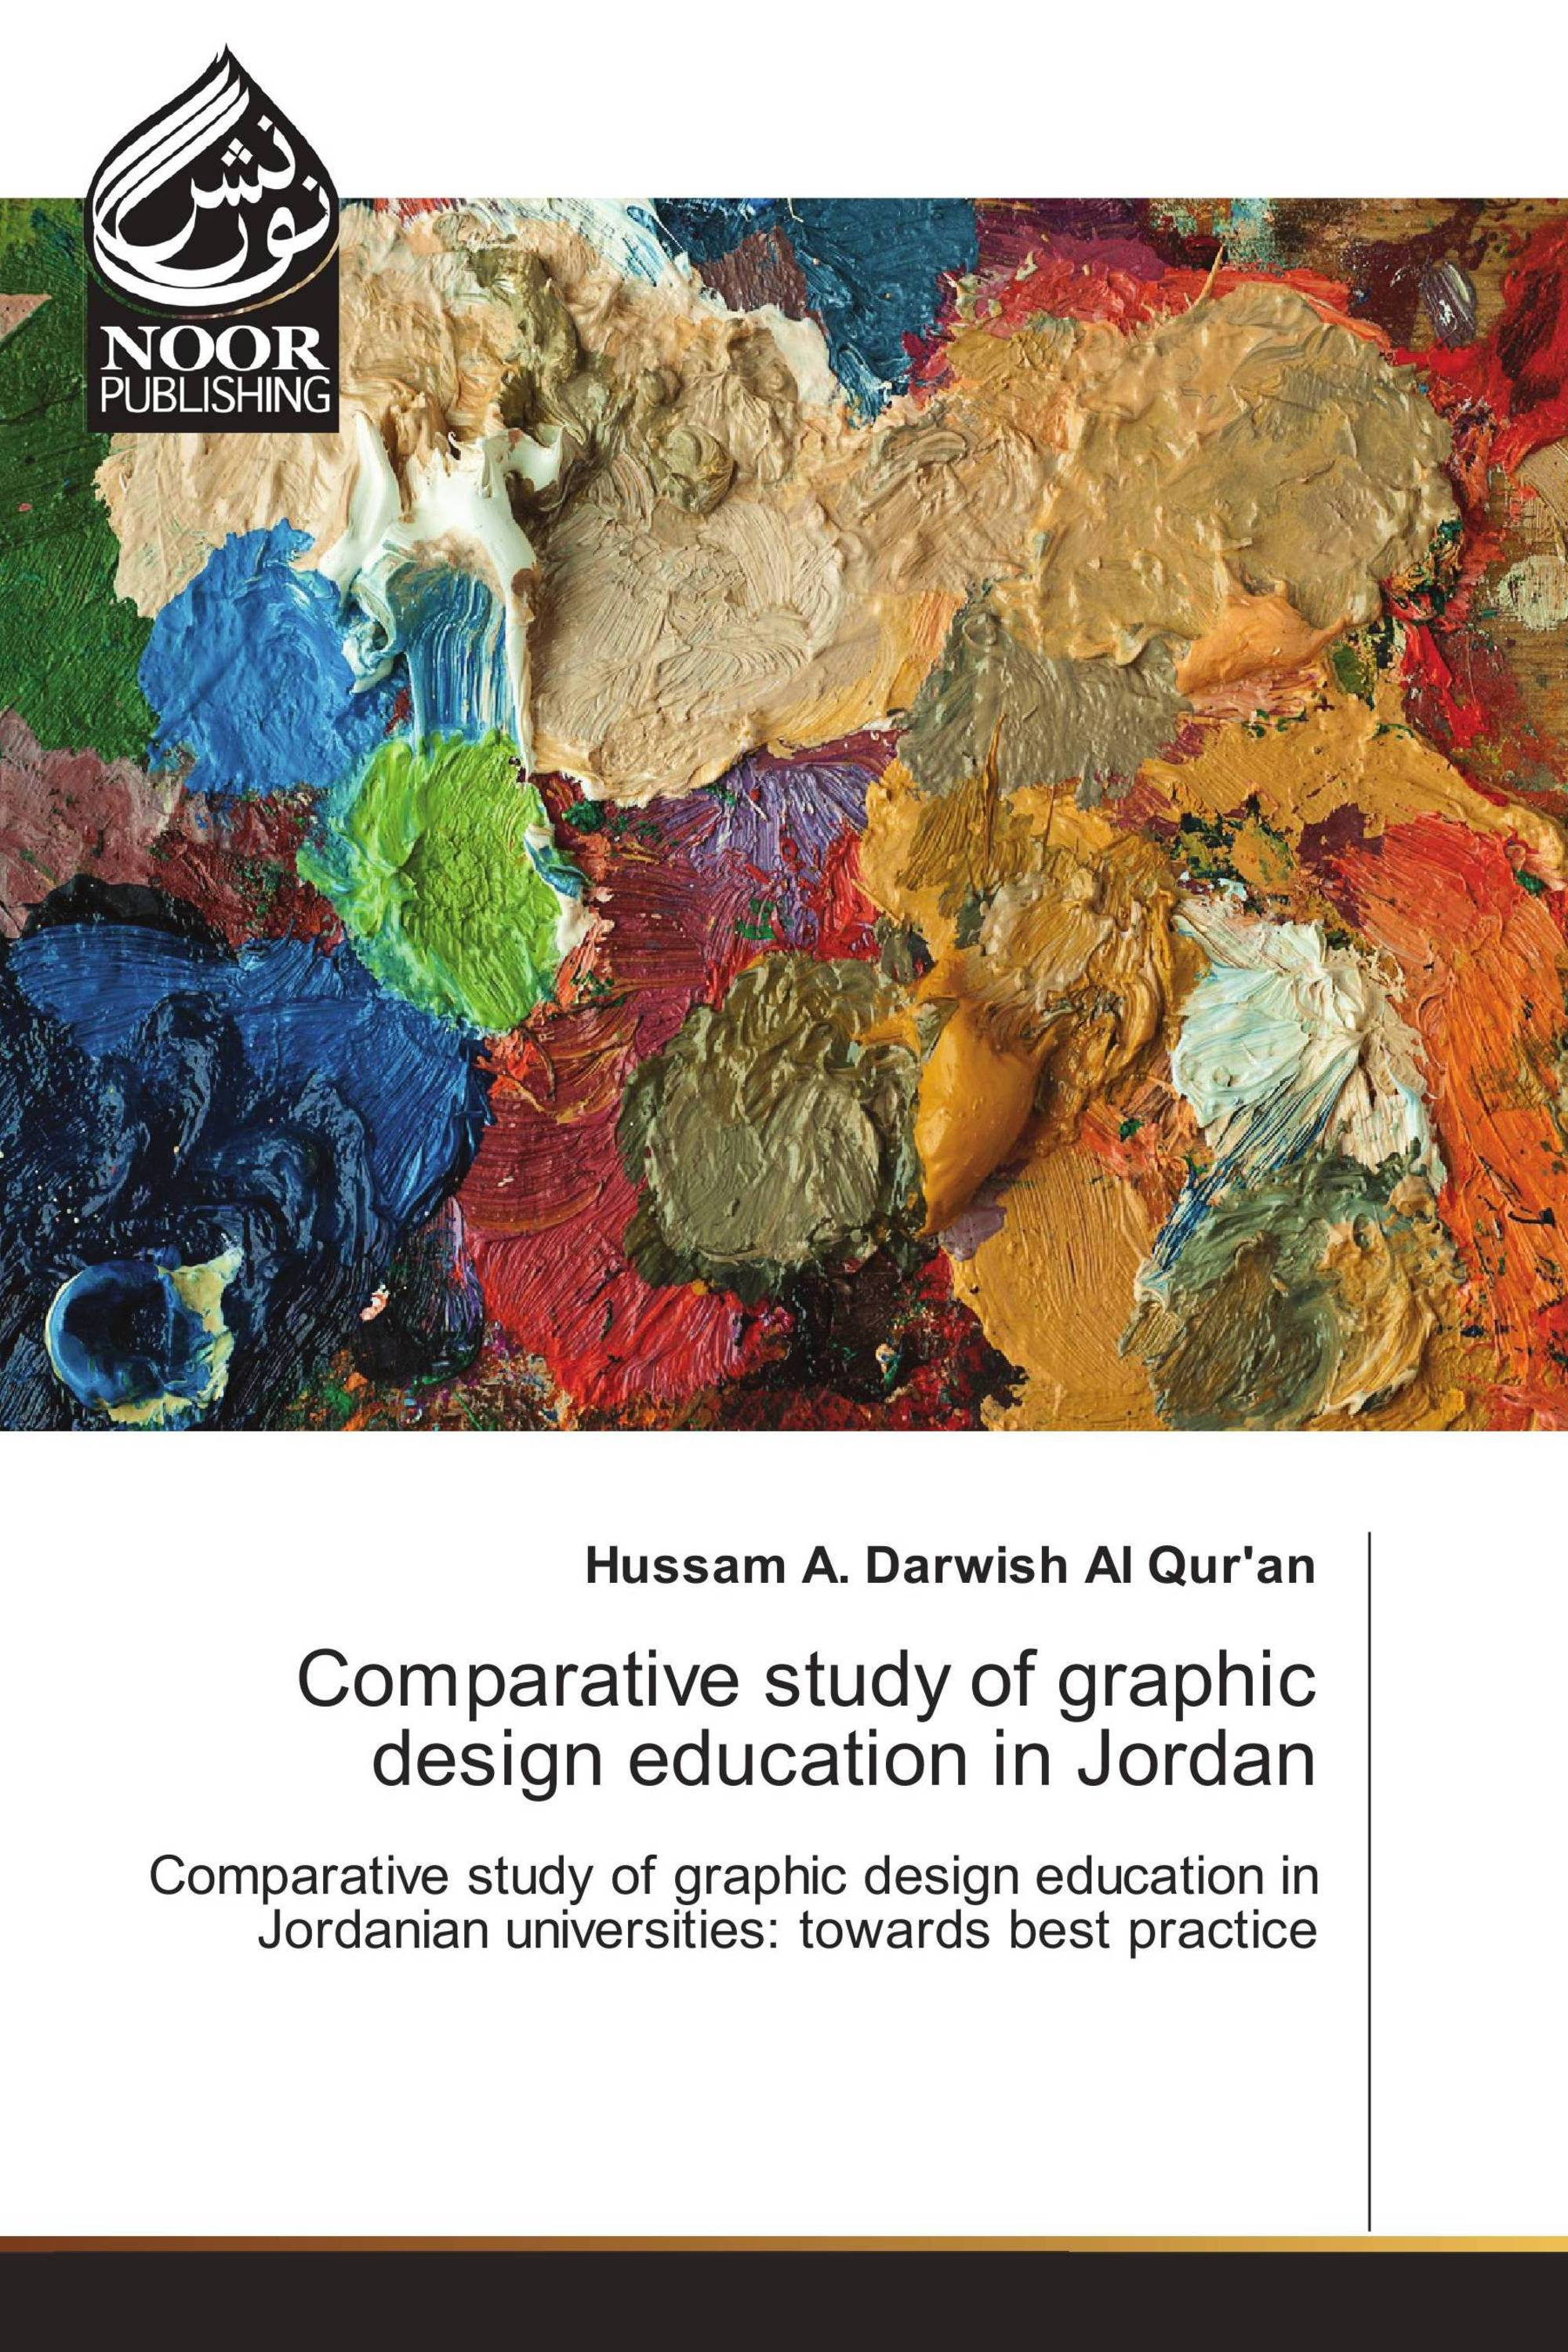 Comparative study of graphic design education in Jordan